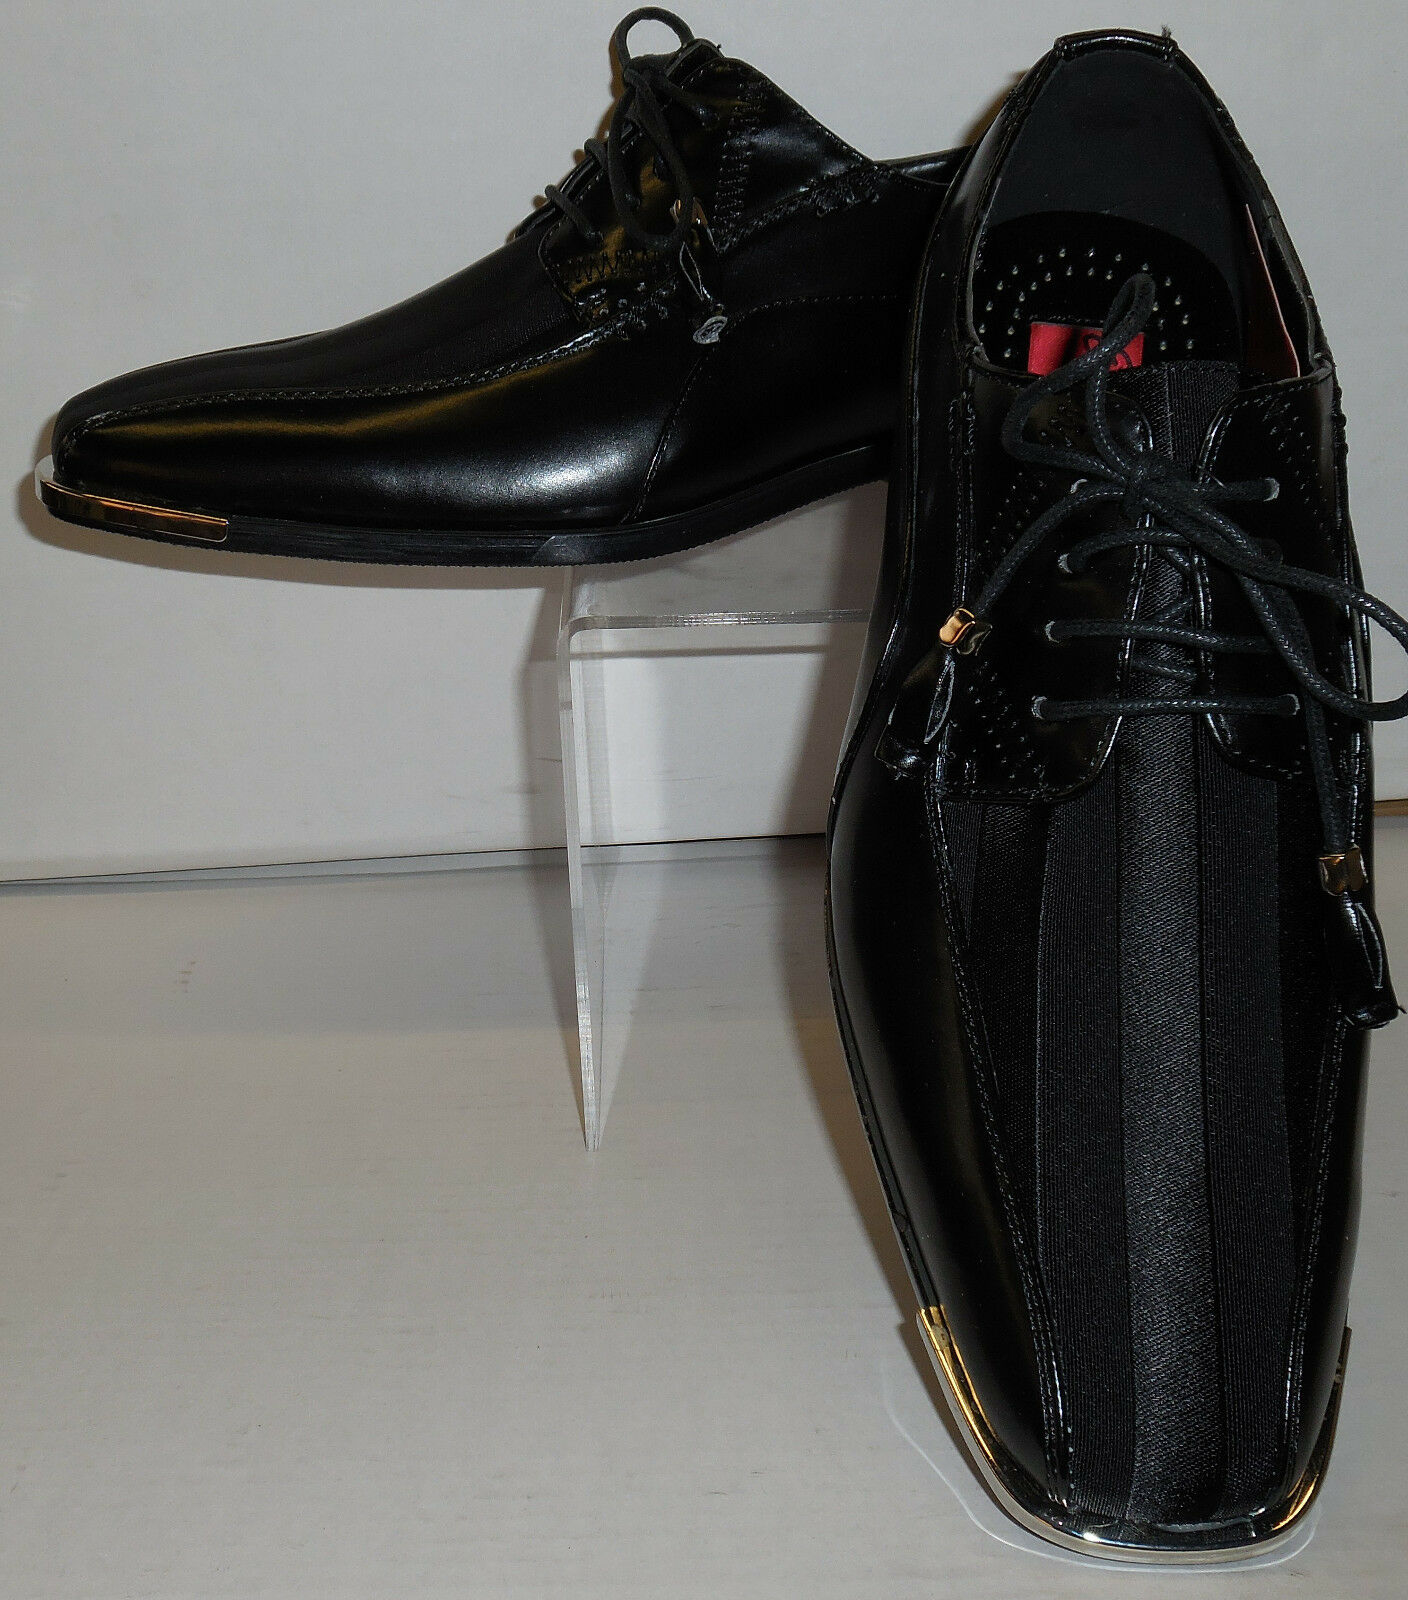 Mens Sophisticated Black Satin Dress shoes Expressions 4925 size  10.5 11